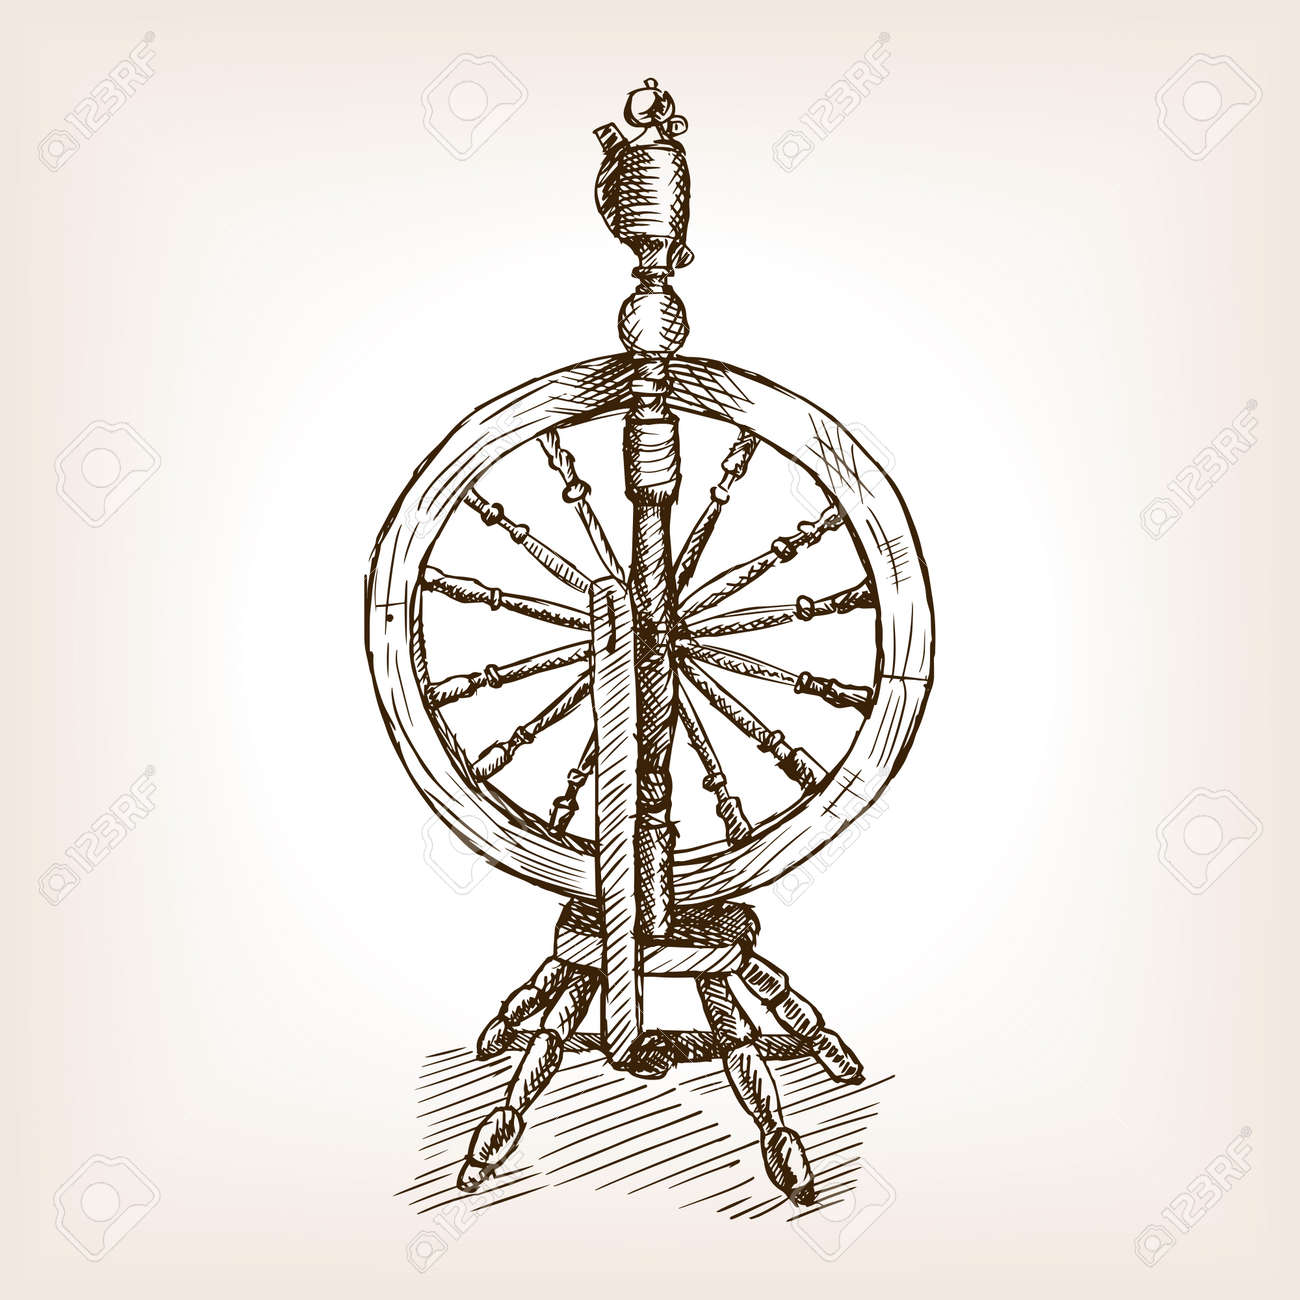 Spinning Wheel Sketch Style Vector Illustration Old Hand Drawn Royalty Free Cliparts Vectors And Stock Illustration Image 55701461